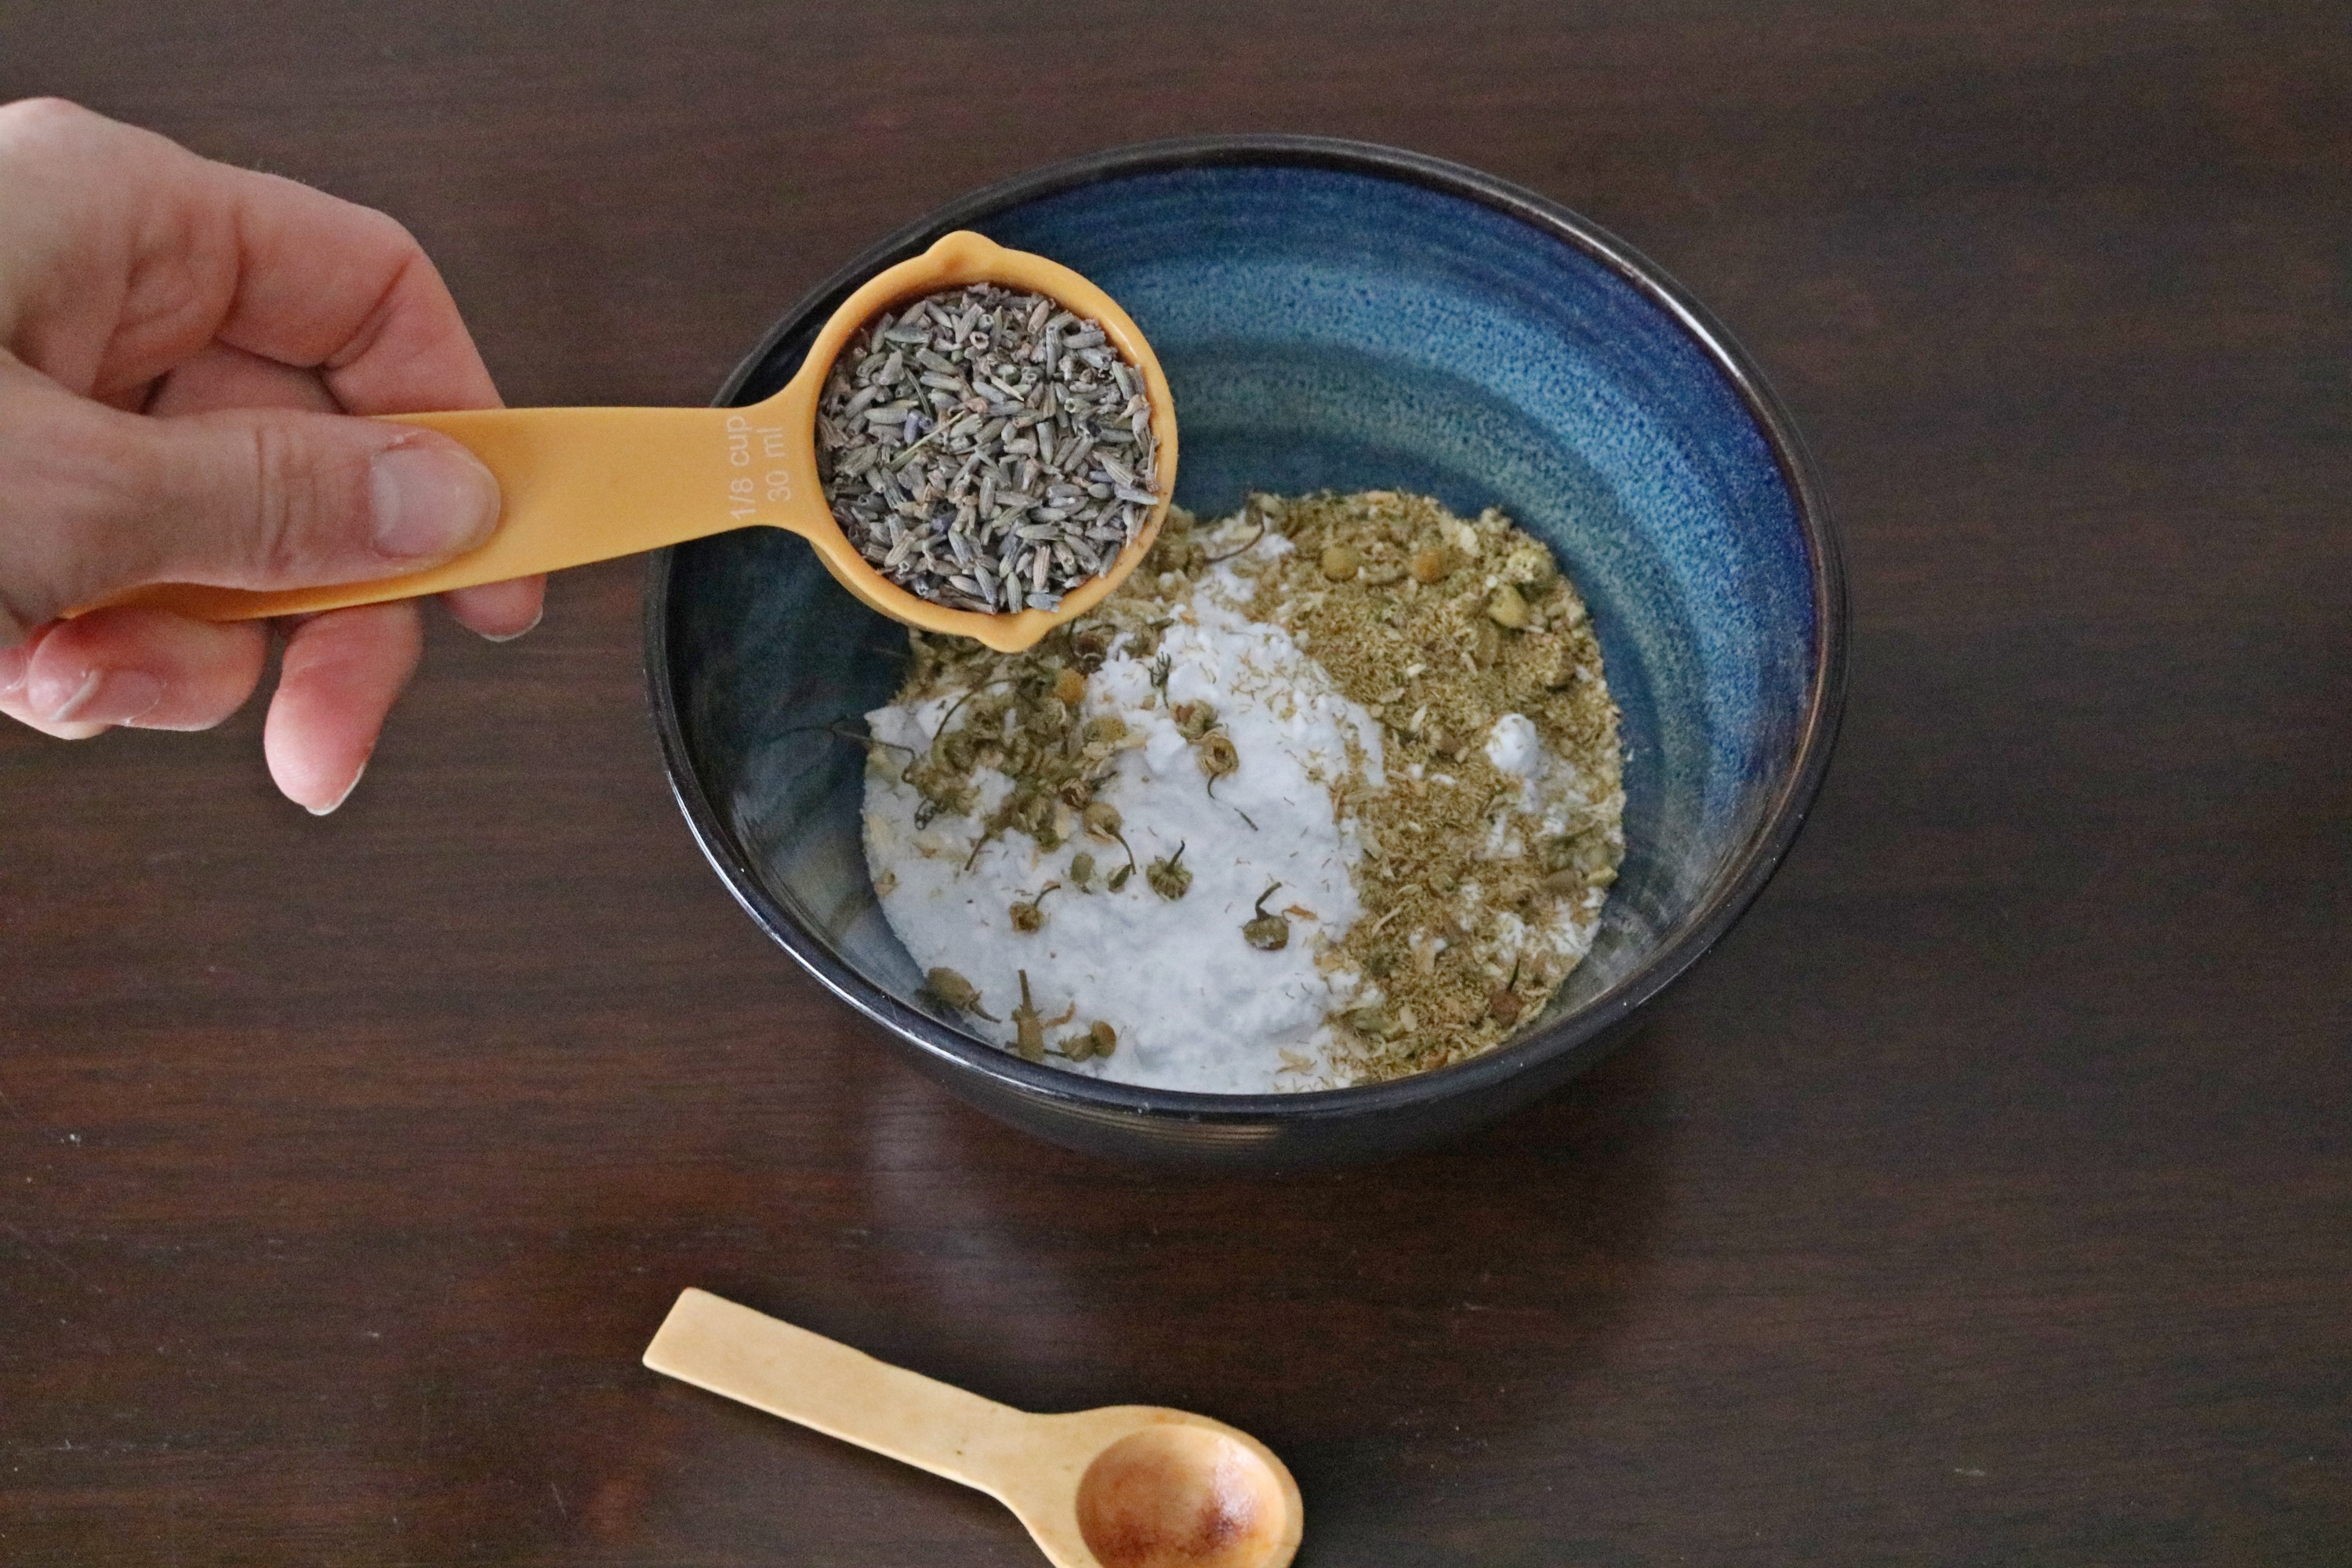 Homemade lavender foot soak